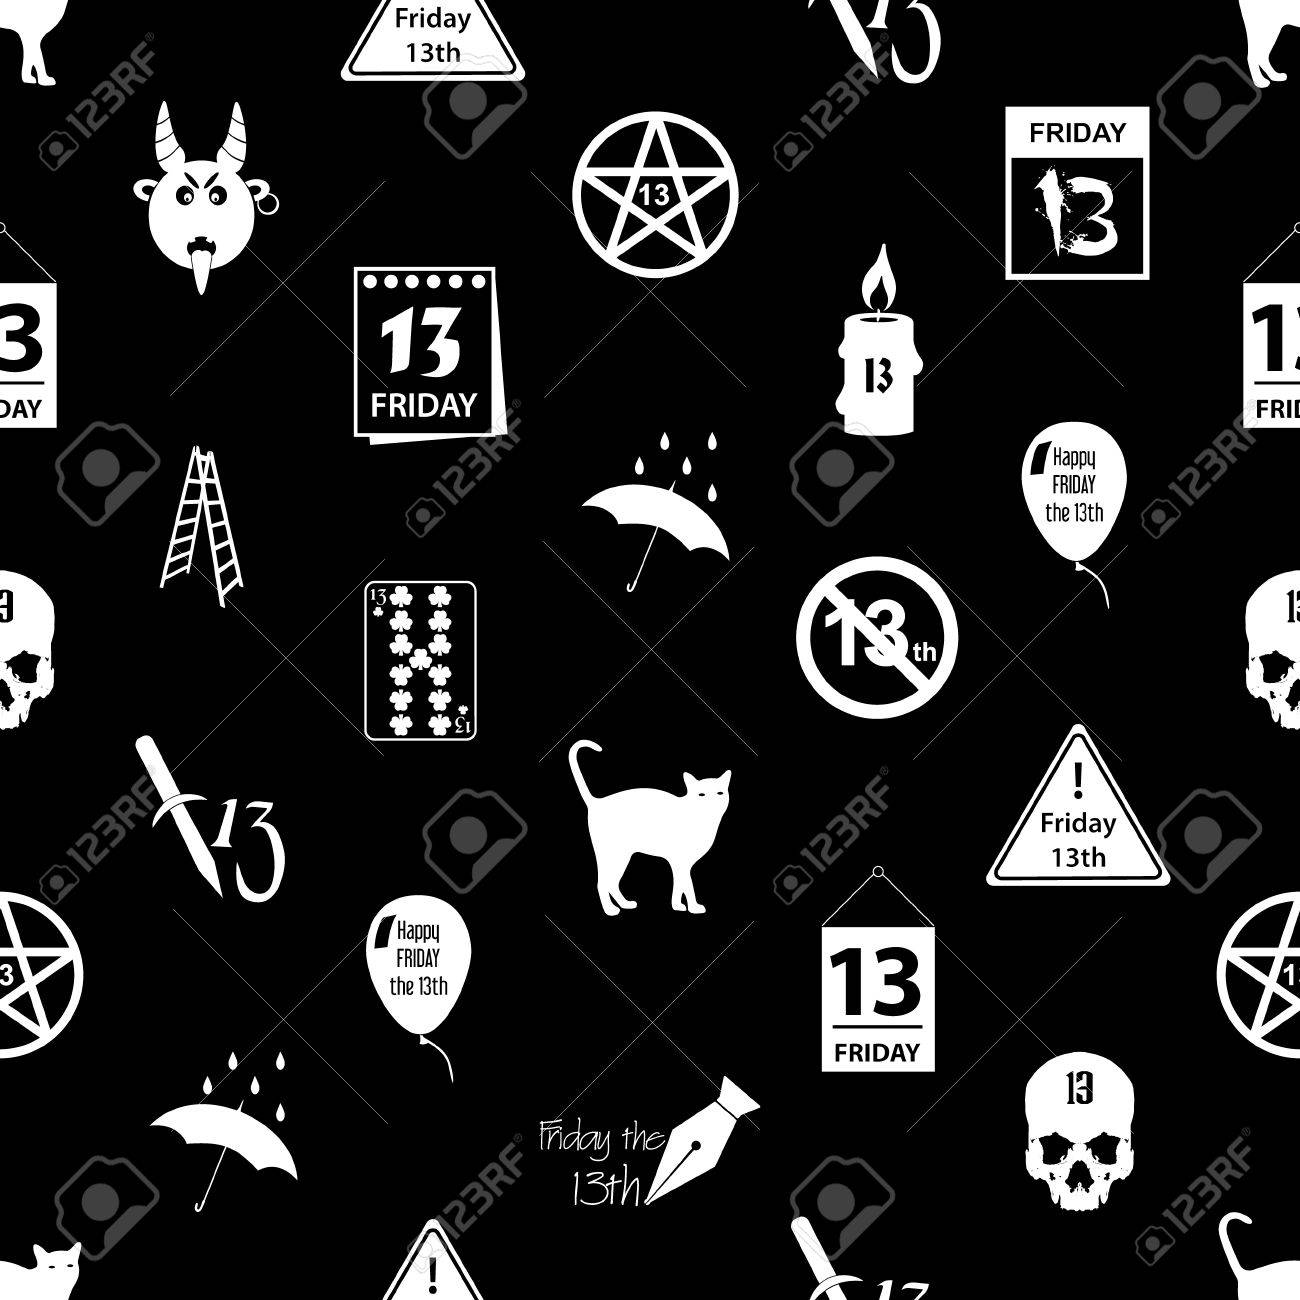 Friday The 13 Bad Luck Day Icons Seamless Pattern Royalty Free